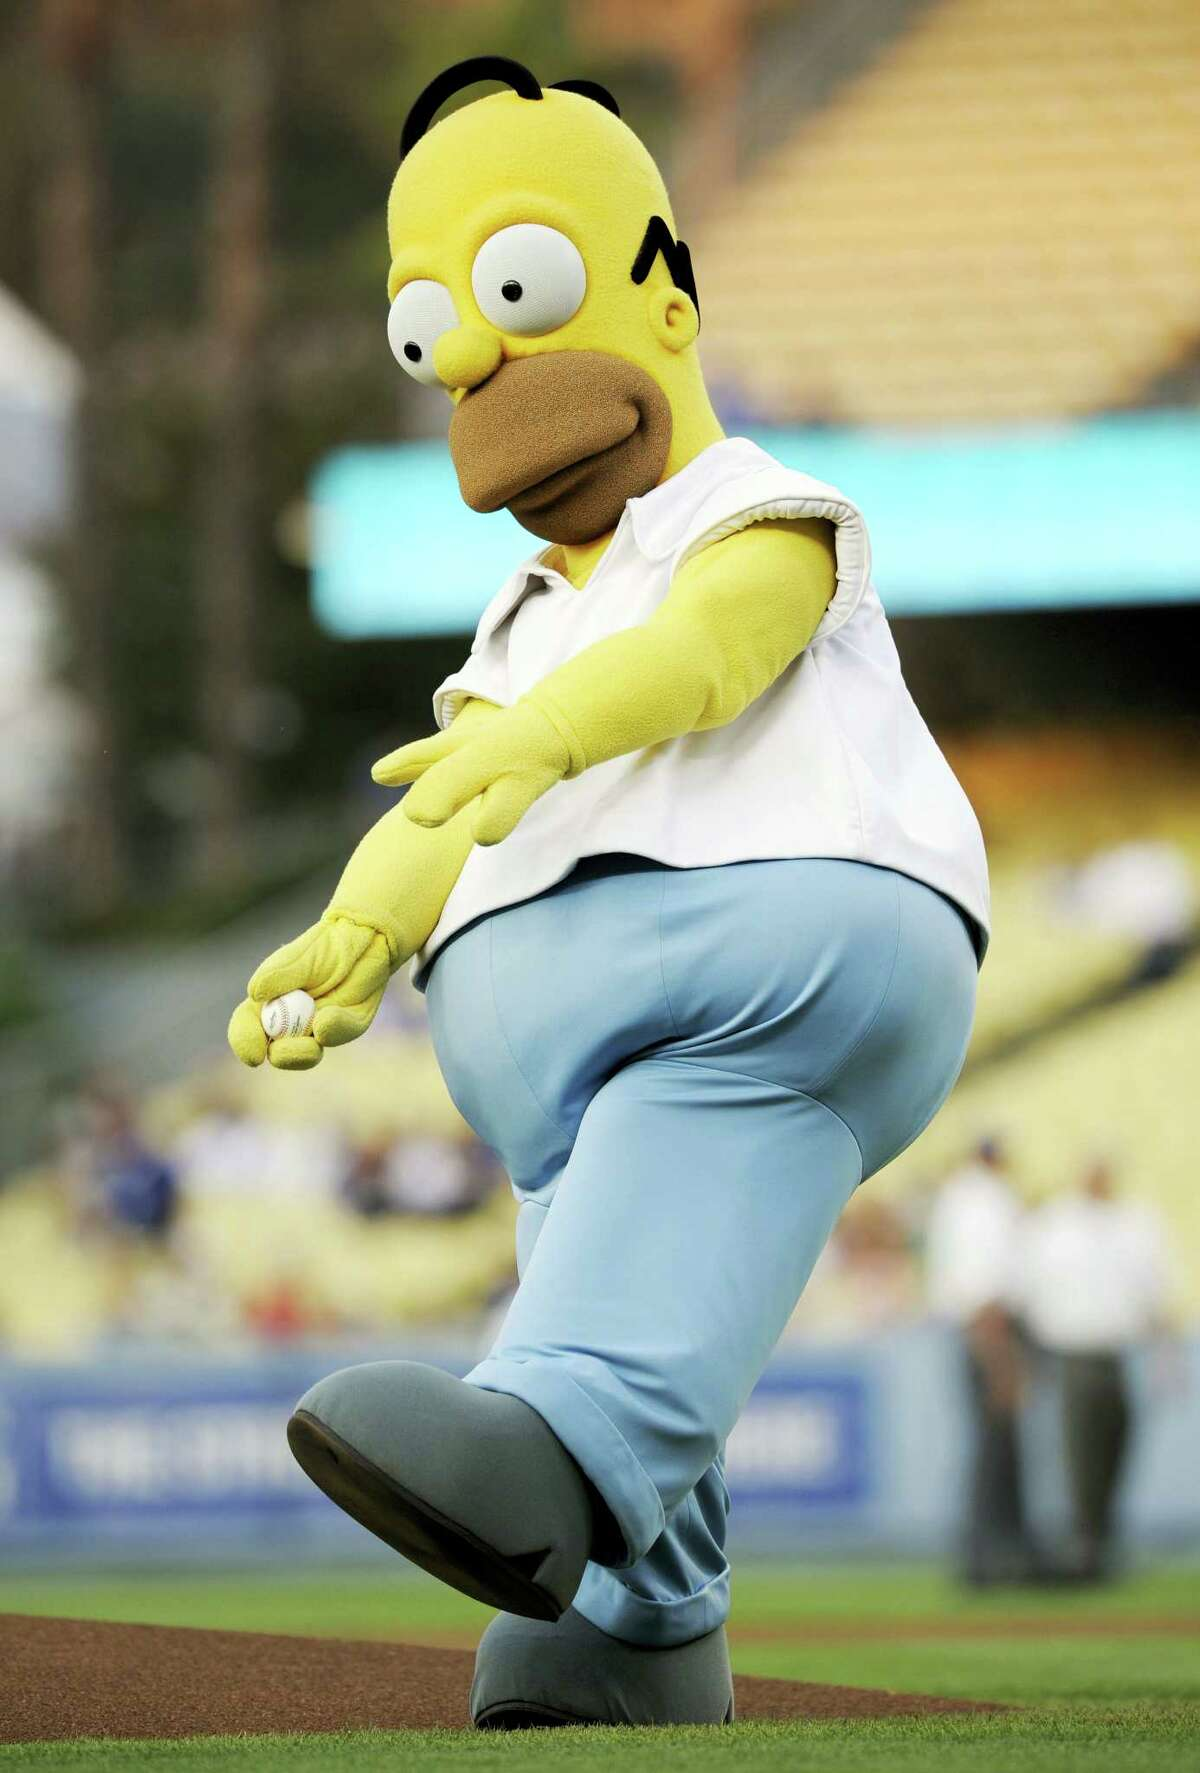 A person in a Homer Simpson costume throws the first pitch before the start of a Dodgers game.